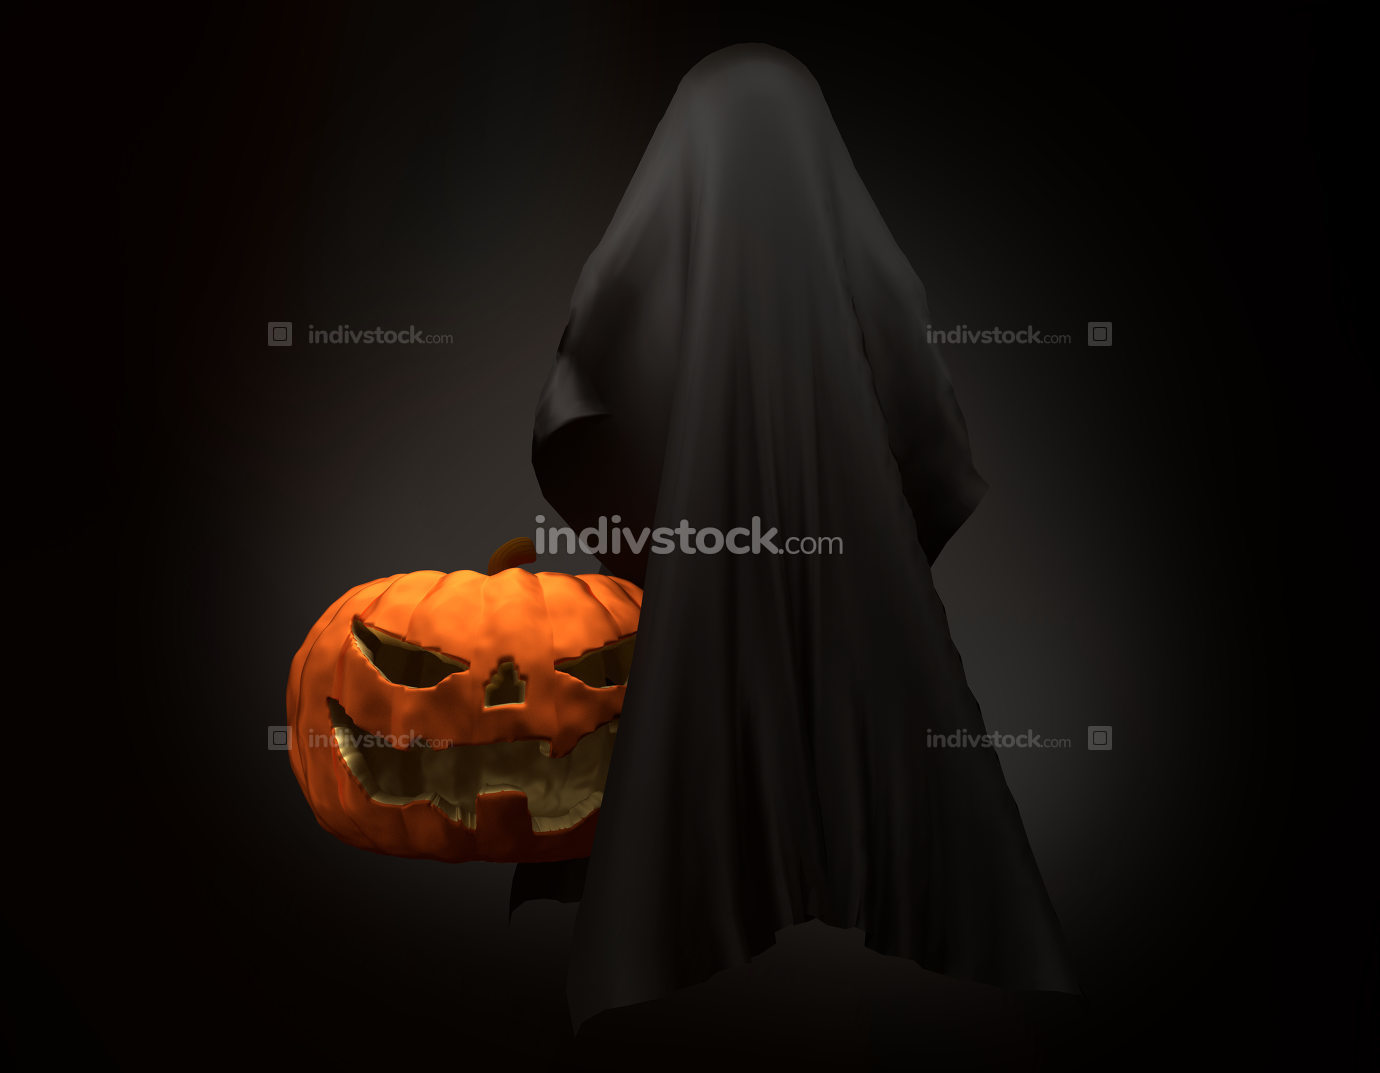 free download: Halloween pumpkin with ghost creature horror halloween 3d illust